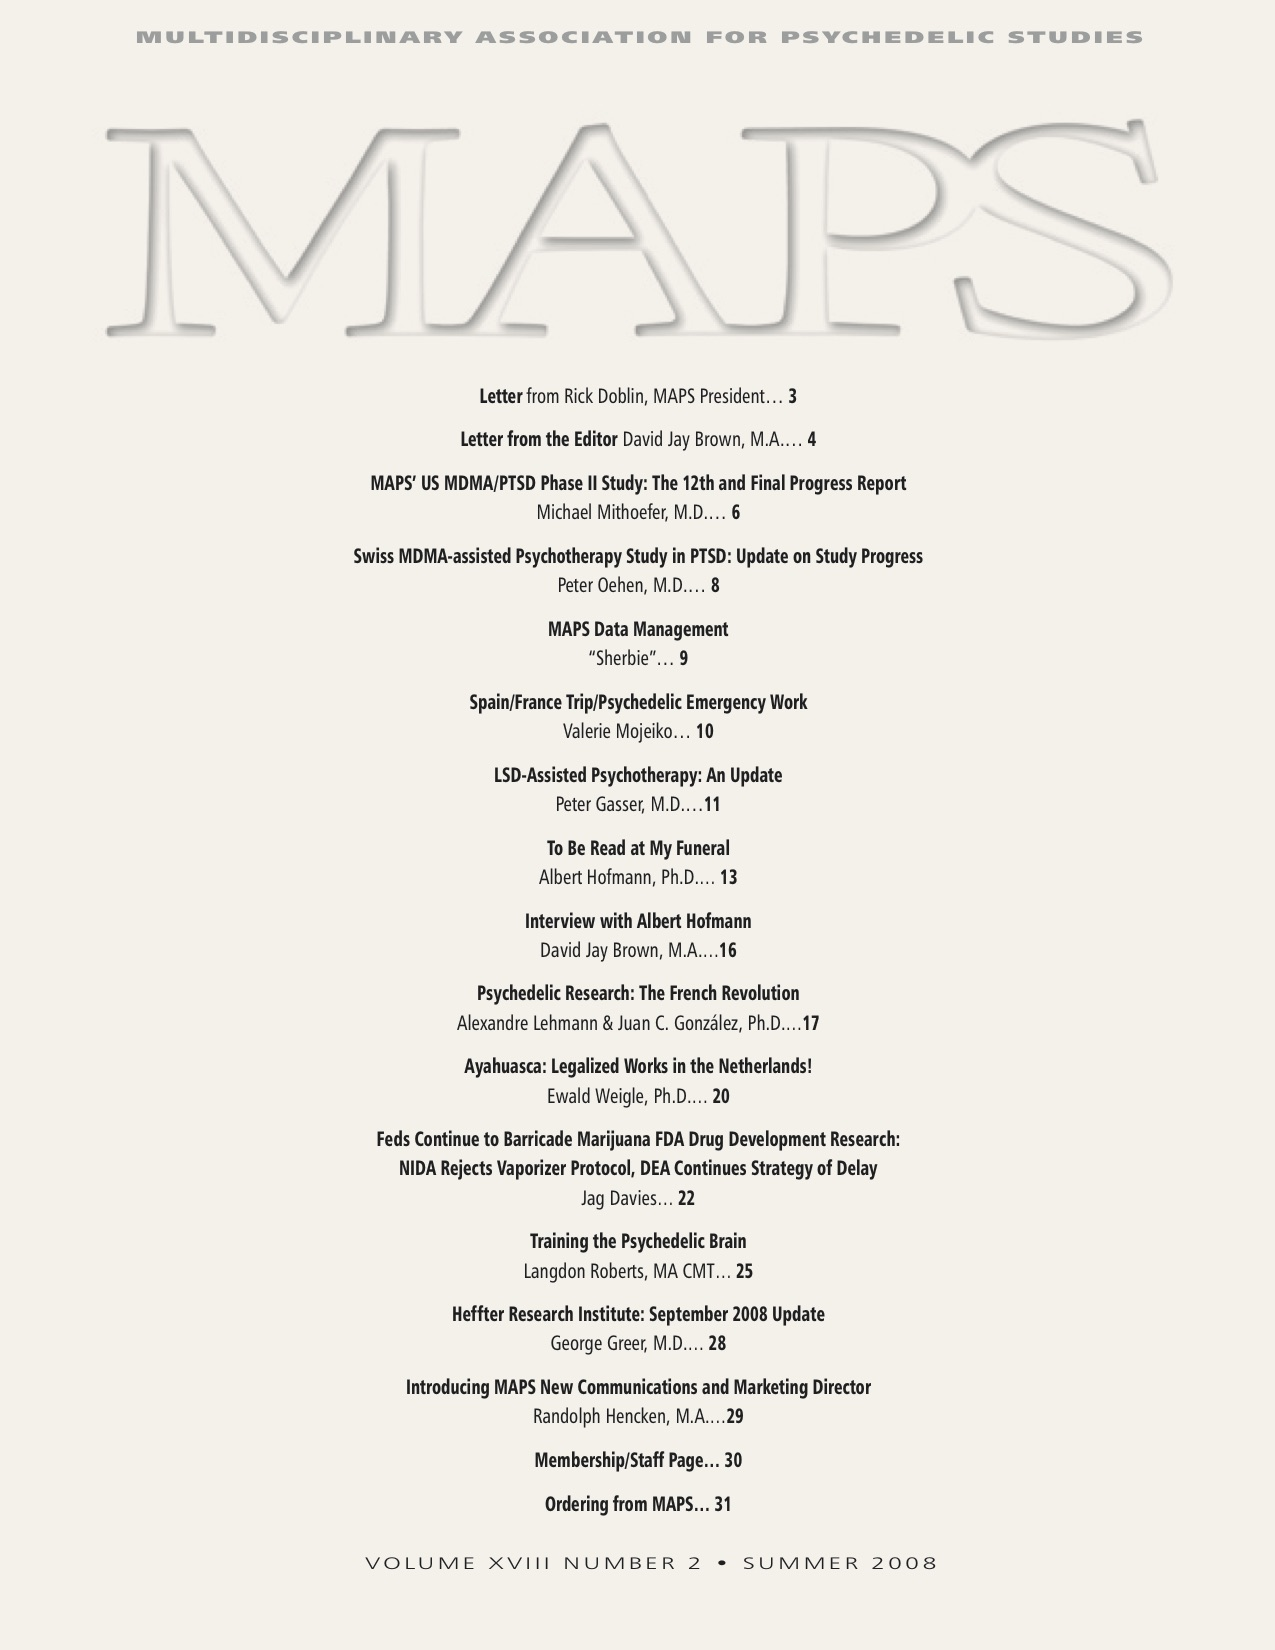 MAPS Bulletin Vol XVIII No 2: Summer 2008 - Front Cover Image